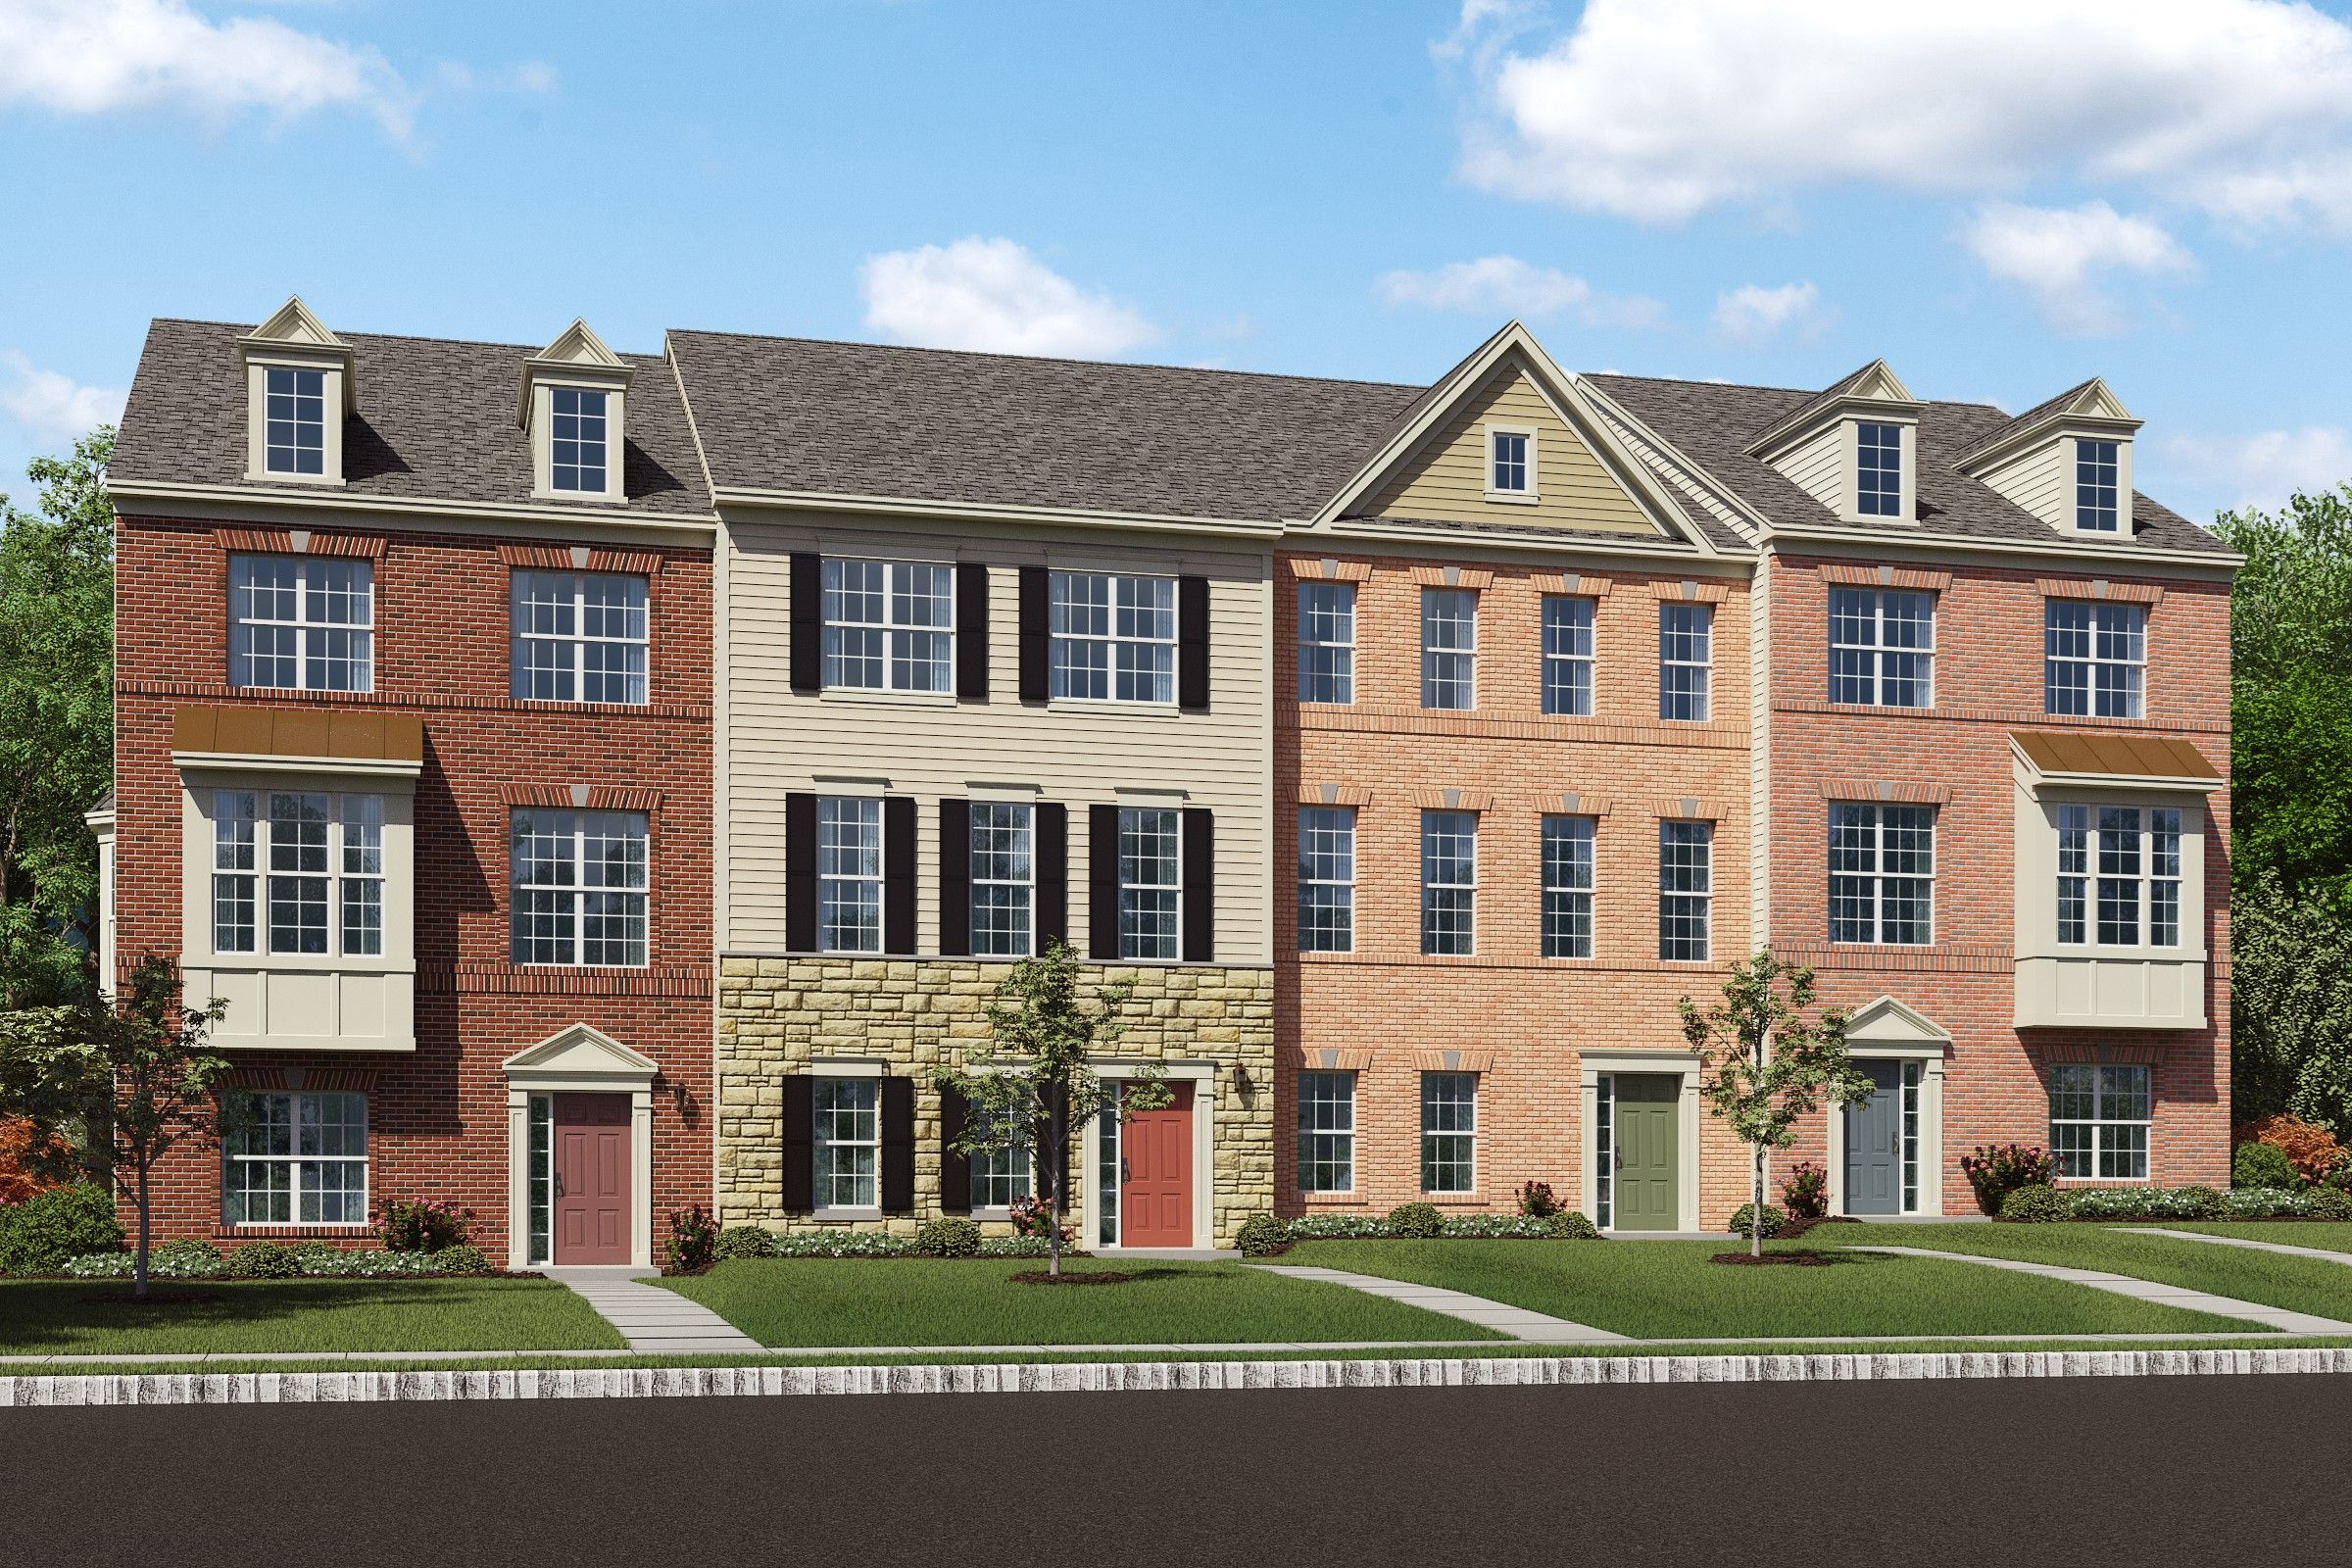 Multi Family for Sale at Montgomery 2215 St. Joseph Drive, Homesite 8j Mitchellville, Maryland 20721 United States